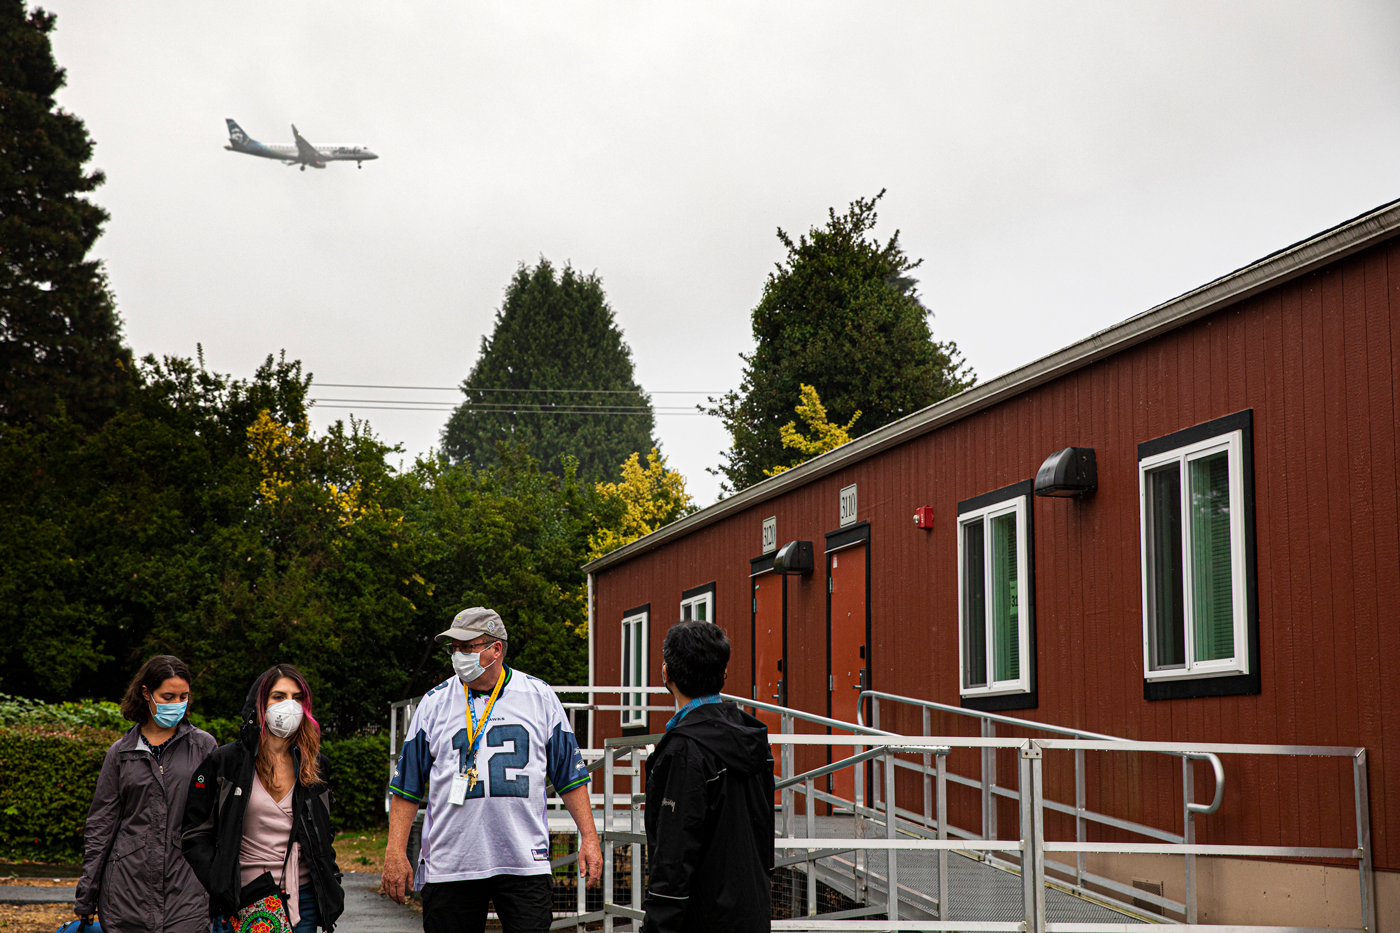 Four people stand outside a modular school building with a plane flying overhead.